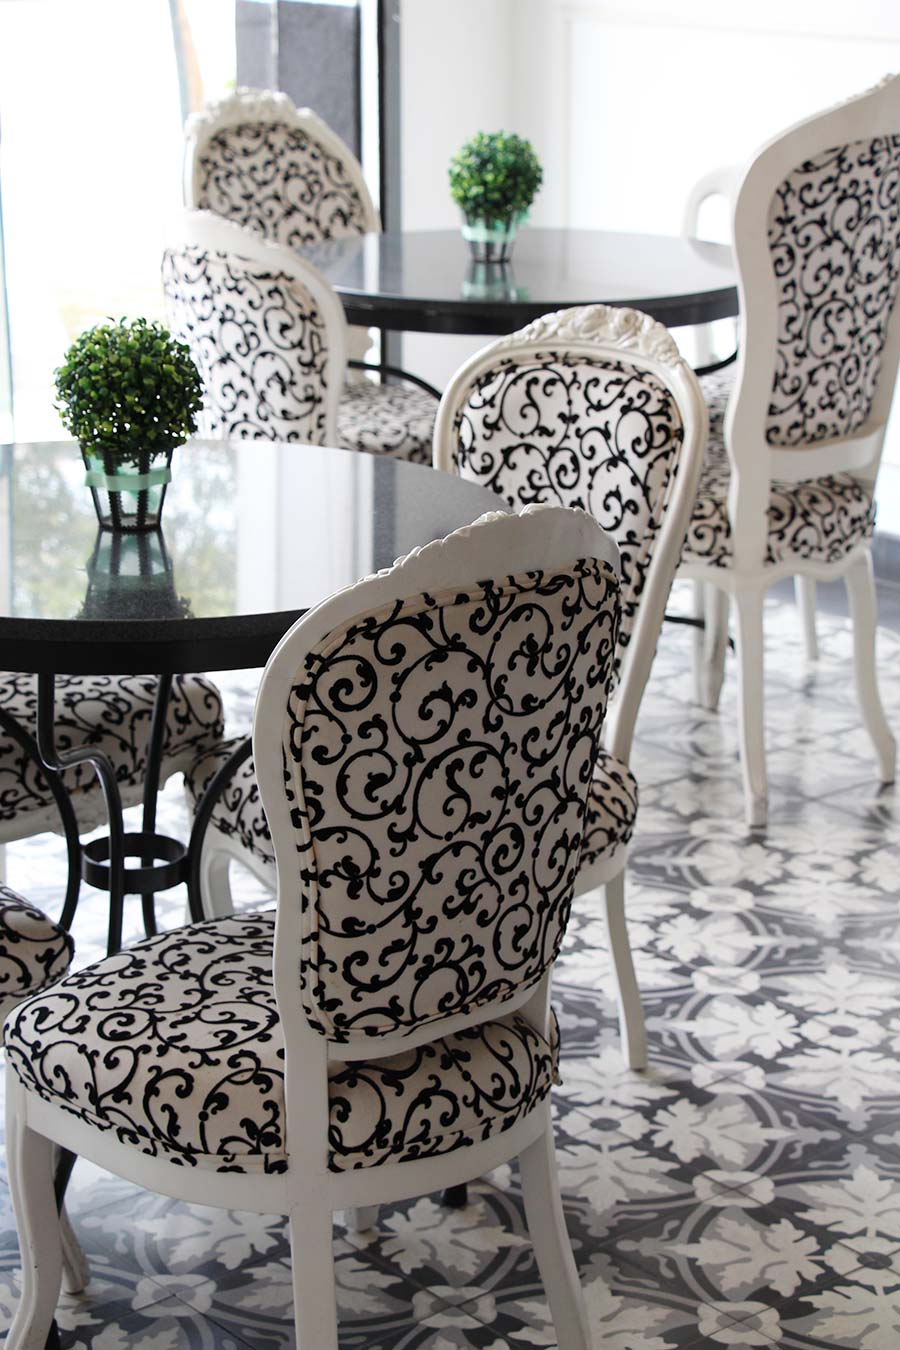 Black & white colonial tiles and decor -  Claribel